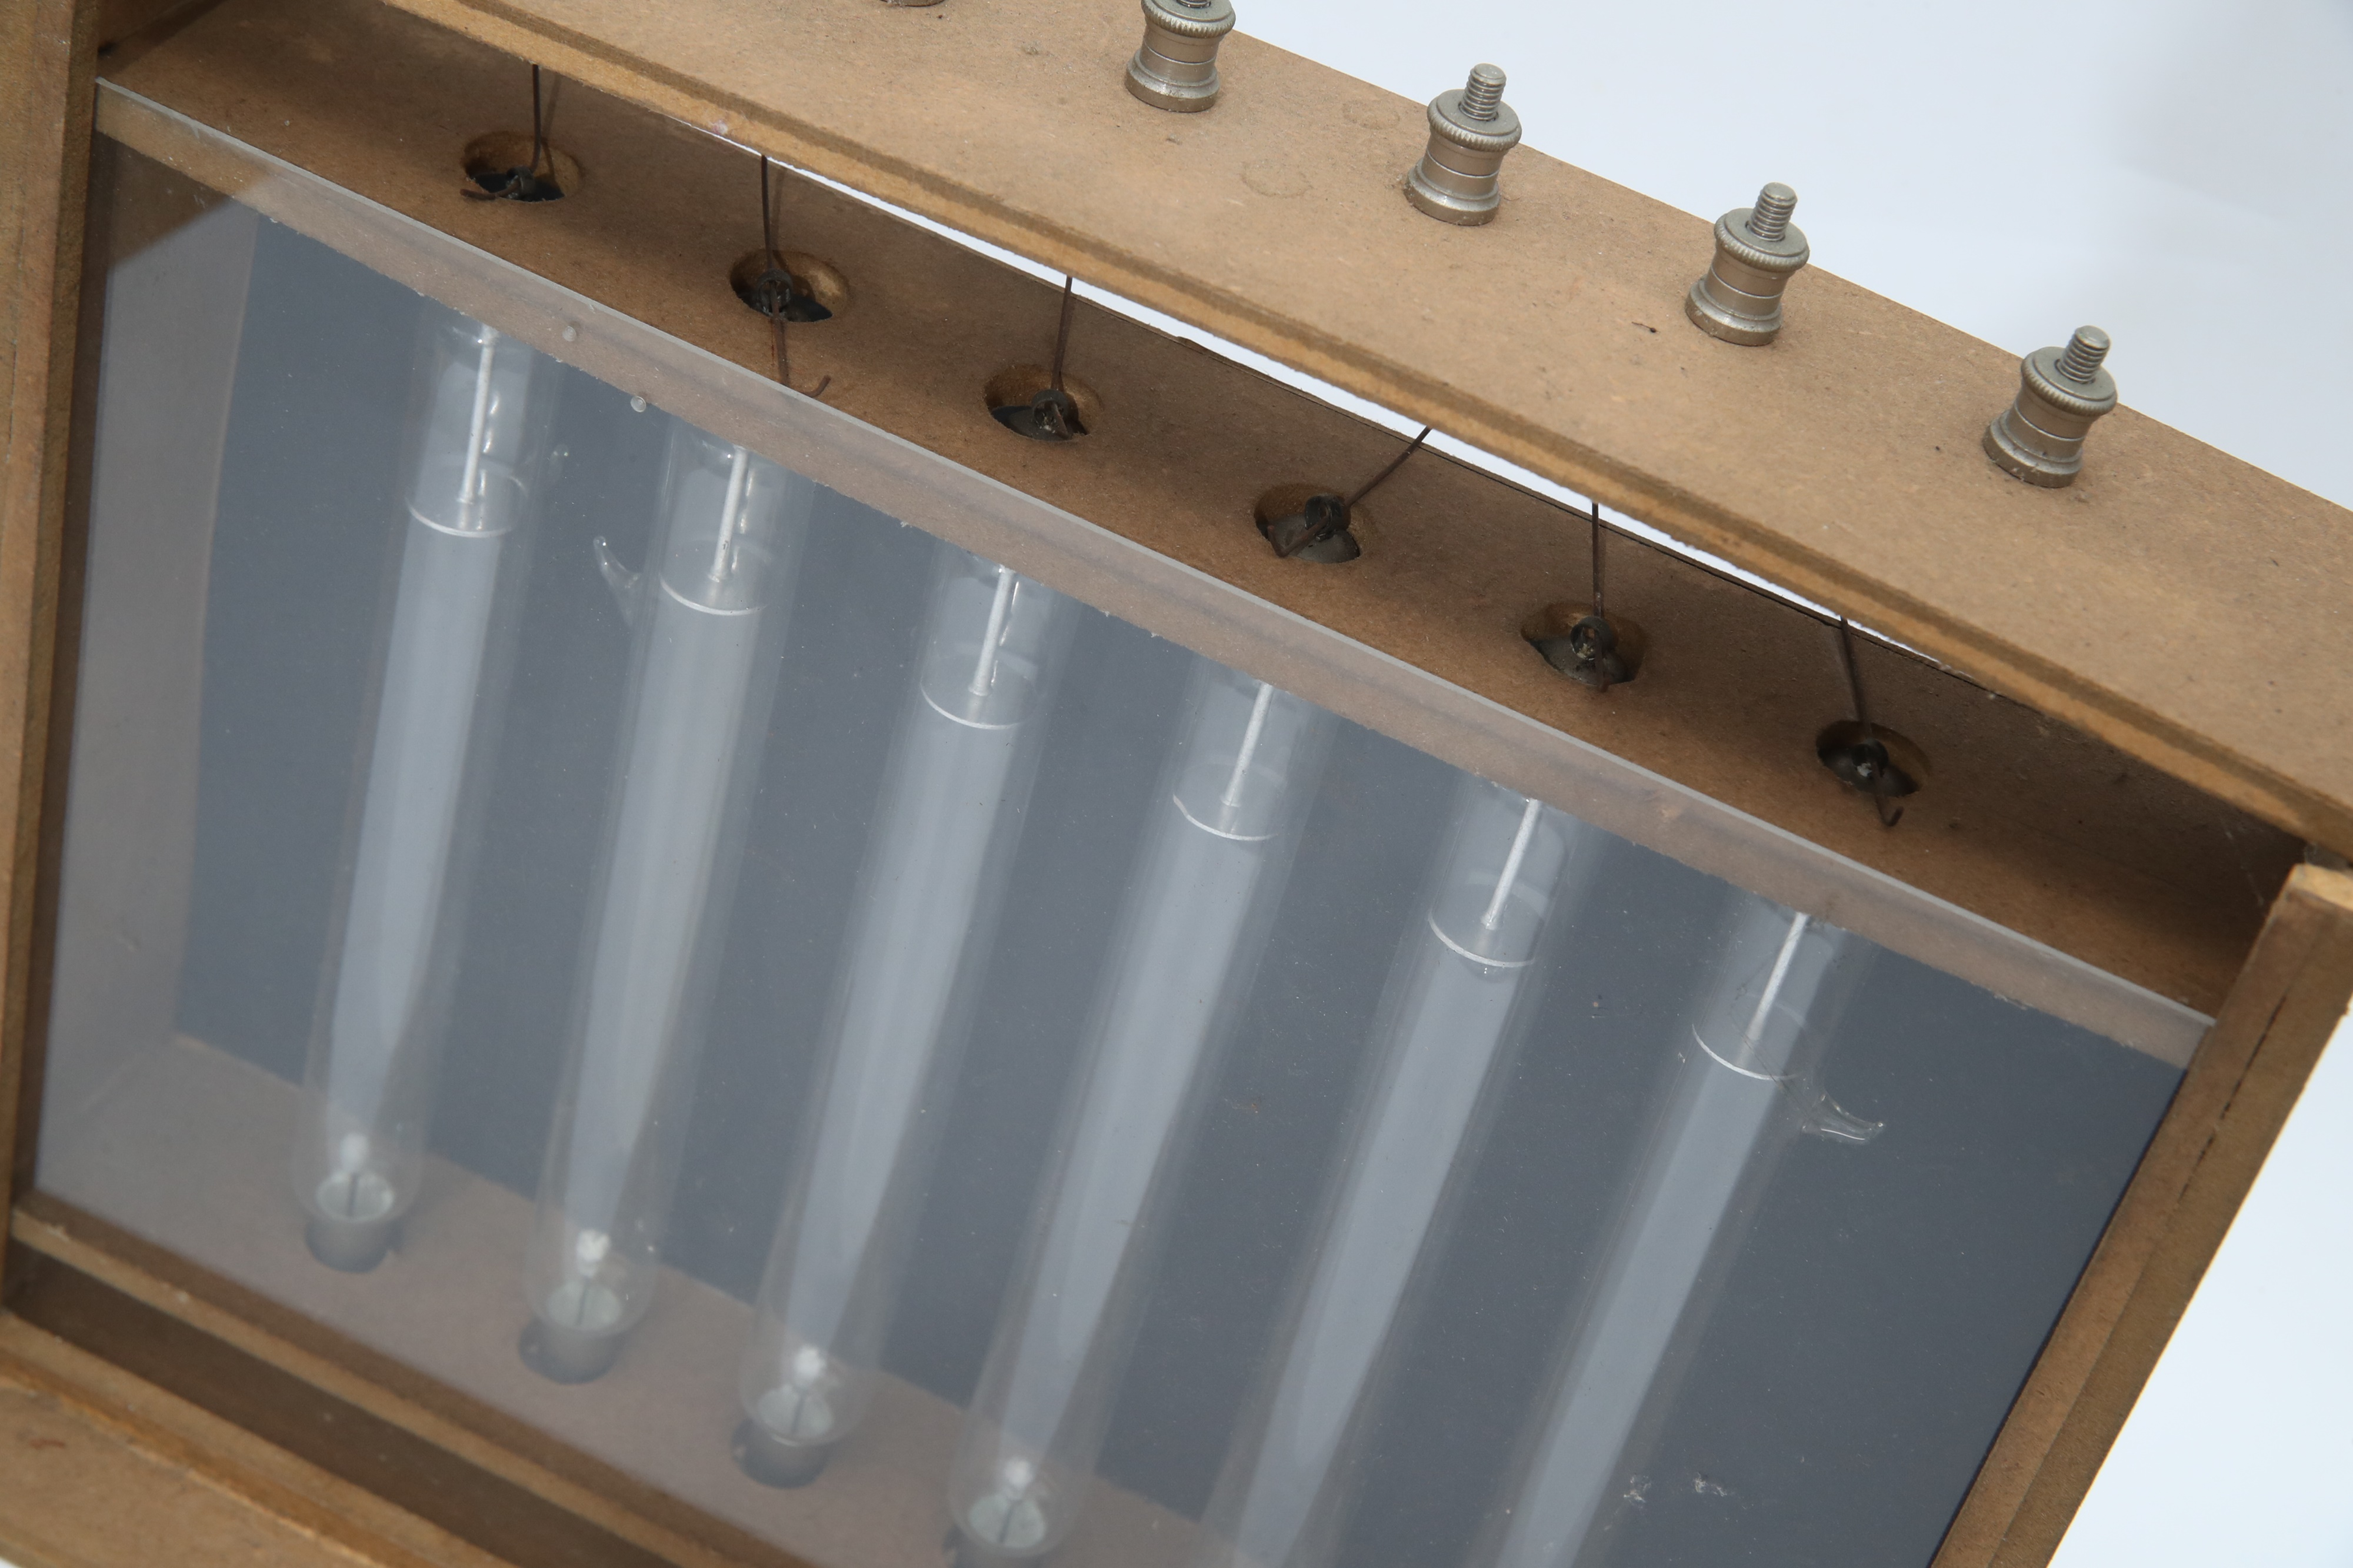 A Group of Geissler Discharge Tubes in a Frame, - Image 2 of 2